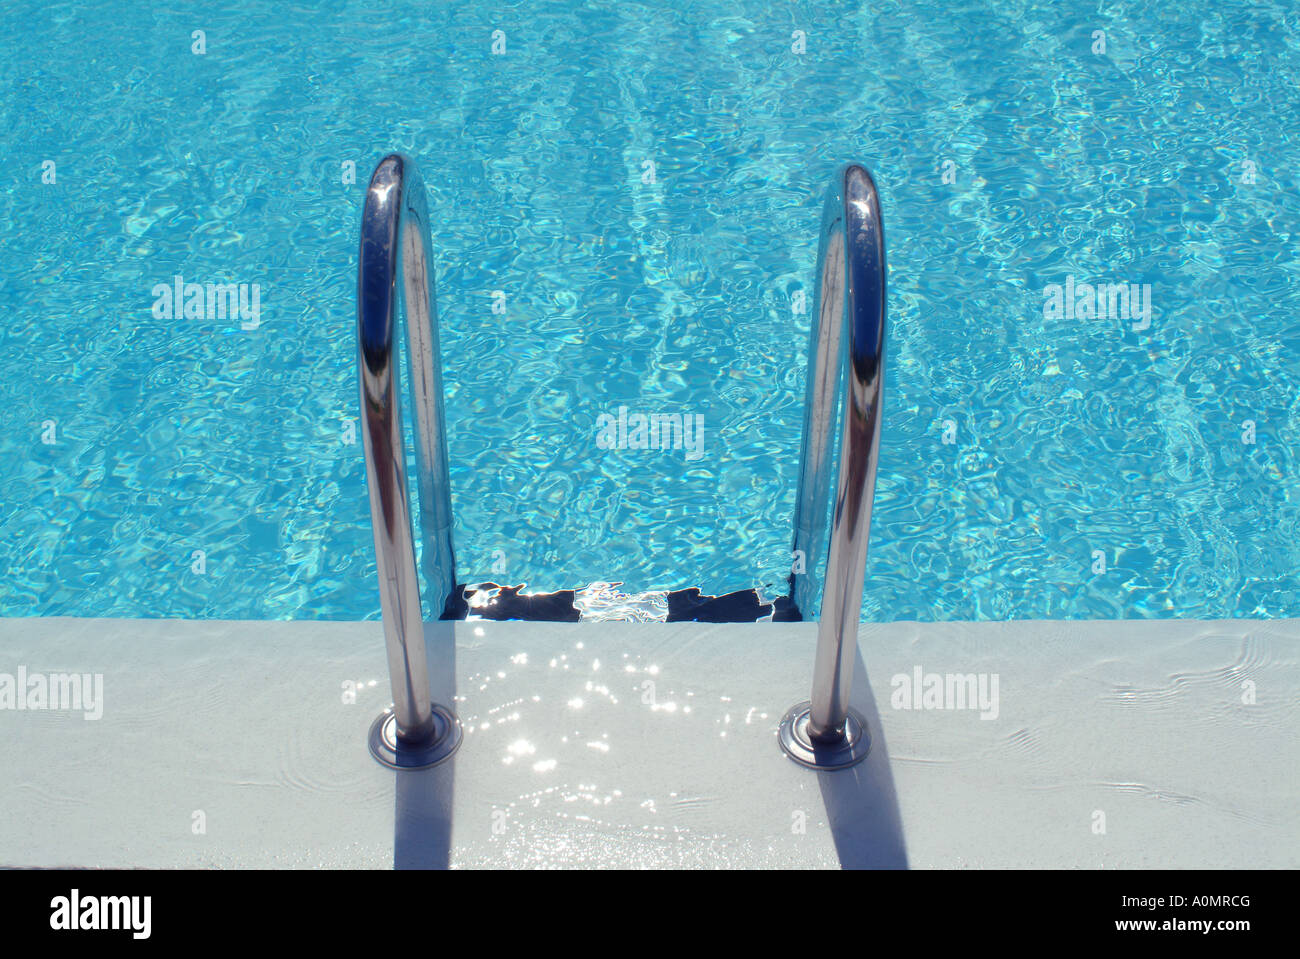 swimming pool Schwimmbecken - Stock Image